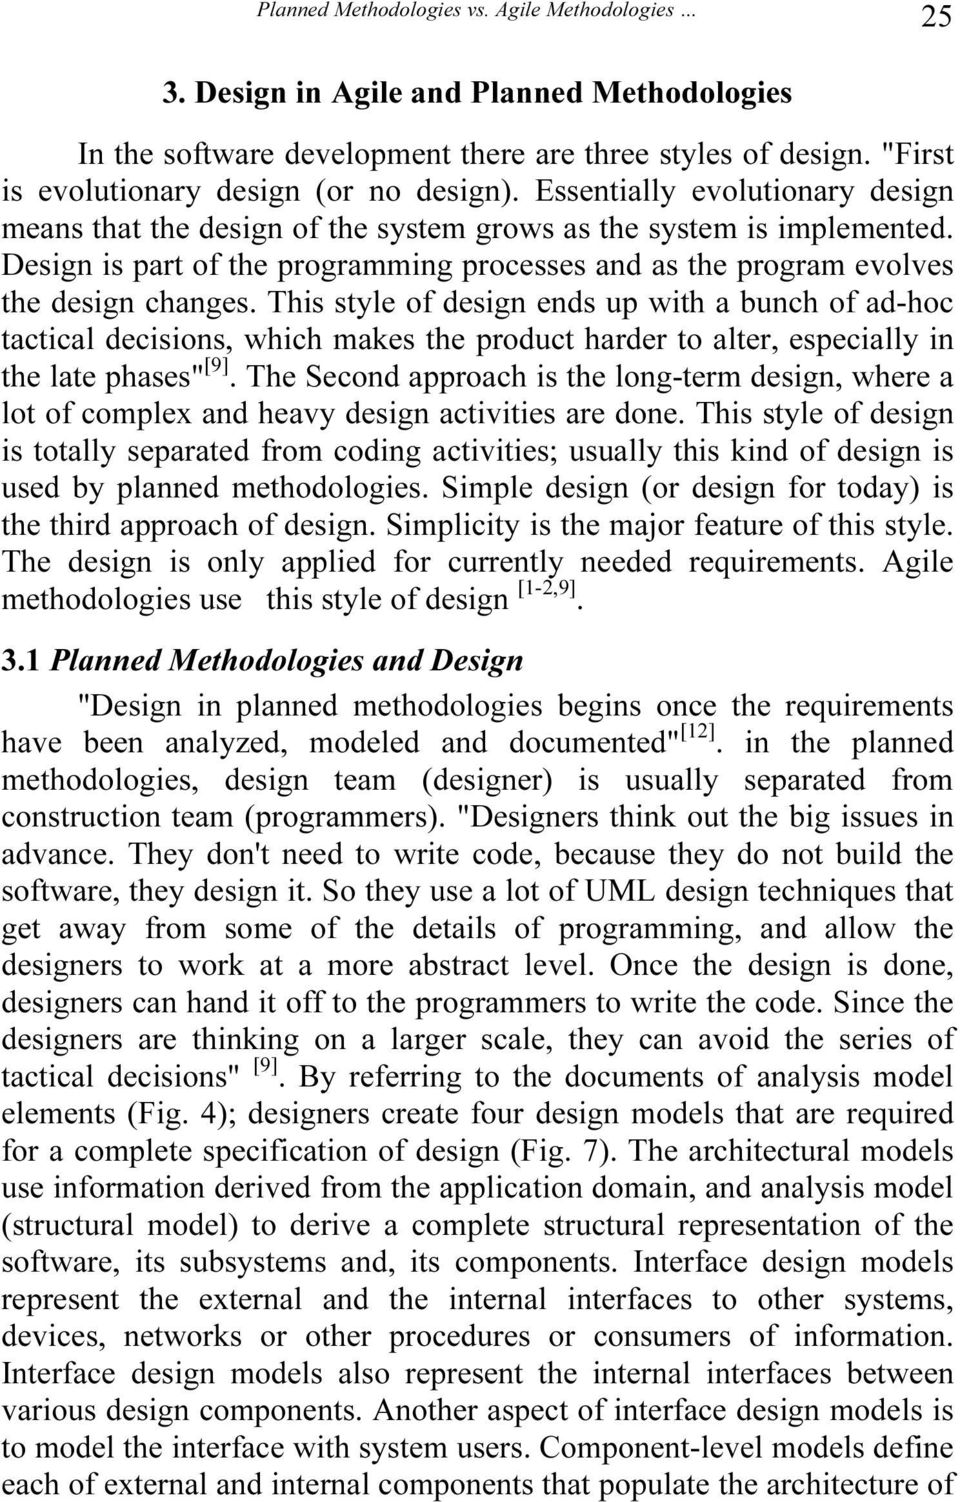 Design is part of the programming processes and as the program evolves the design changes.